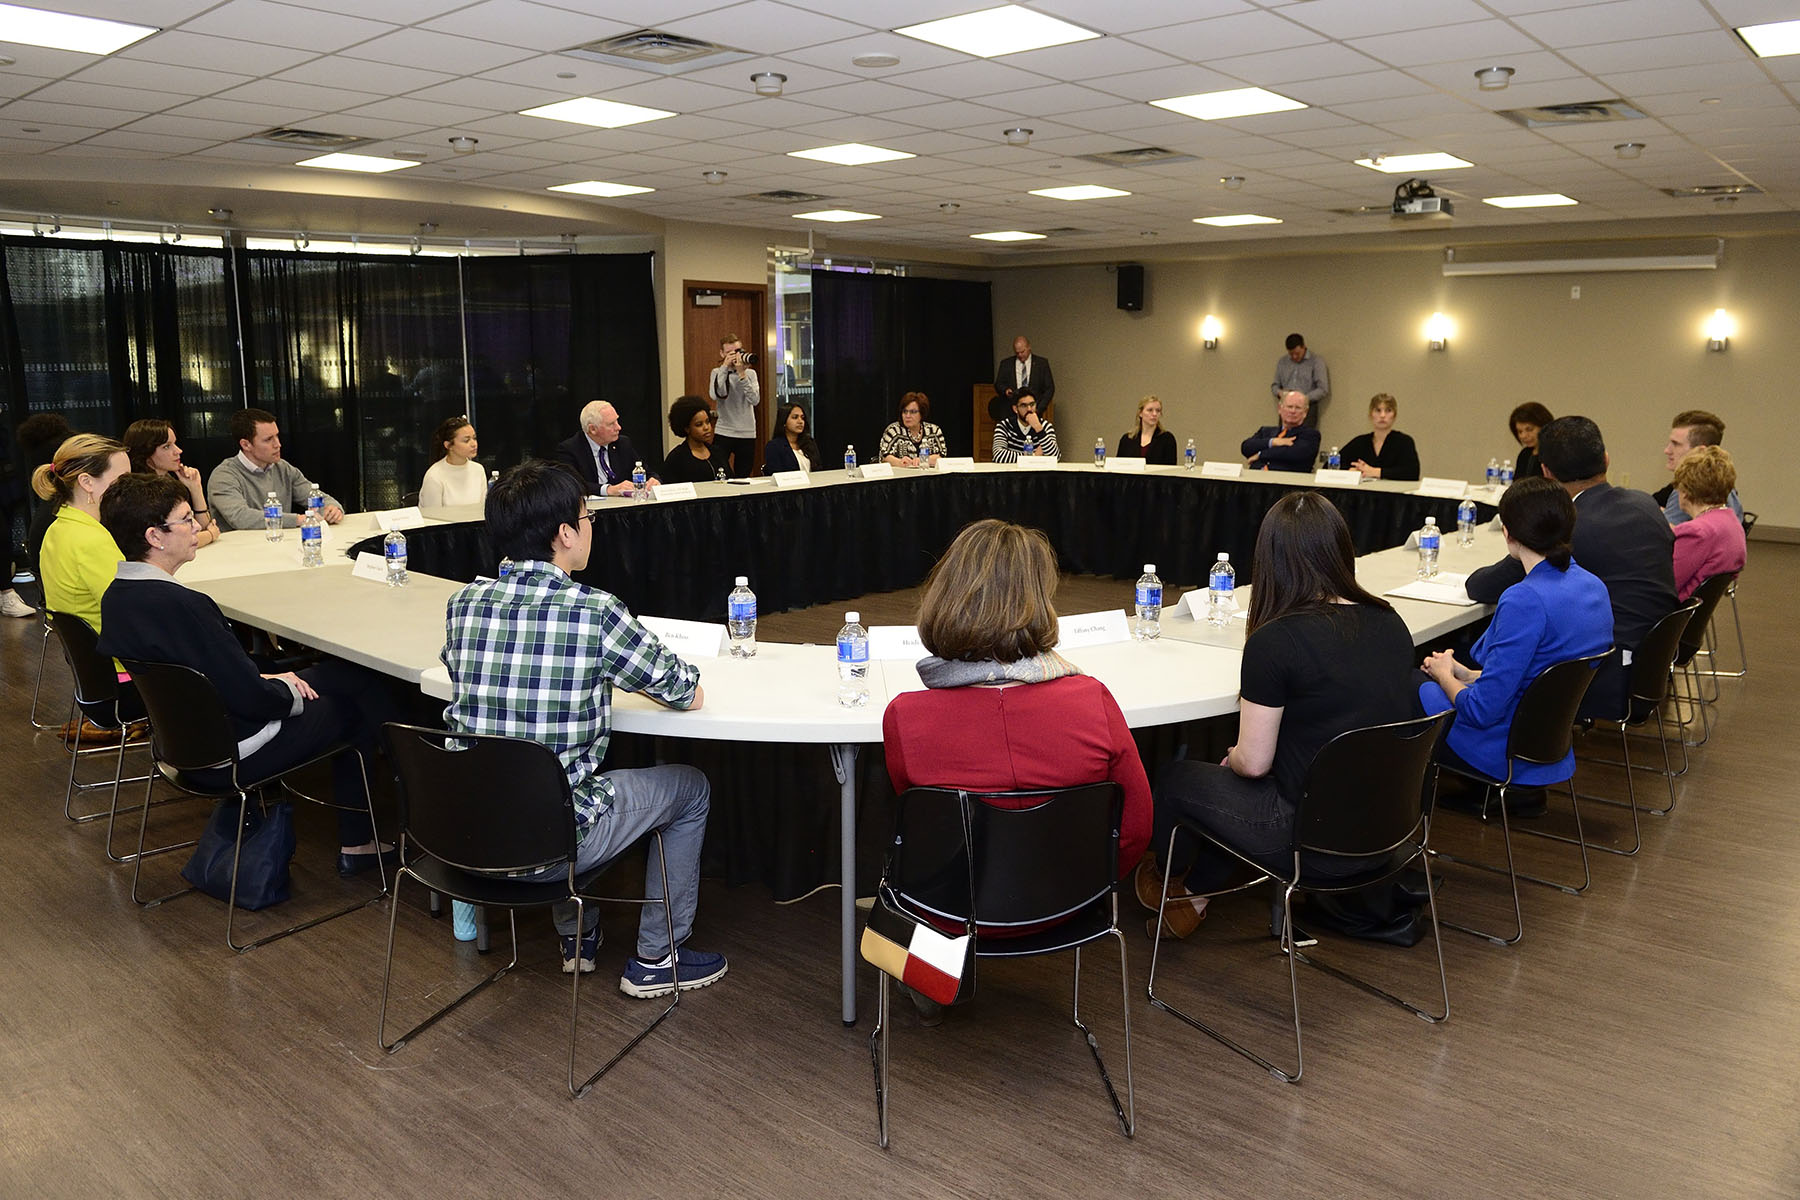 Afterwards, Their Excellencies visited Western University's new Wellness Education Centre and participated in a round-table discussion on health and wellness with staff coordinators, student volunteers, and students who are benefiting from its services.